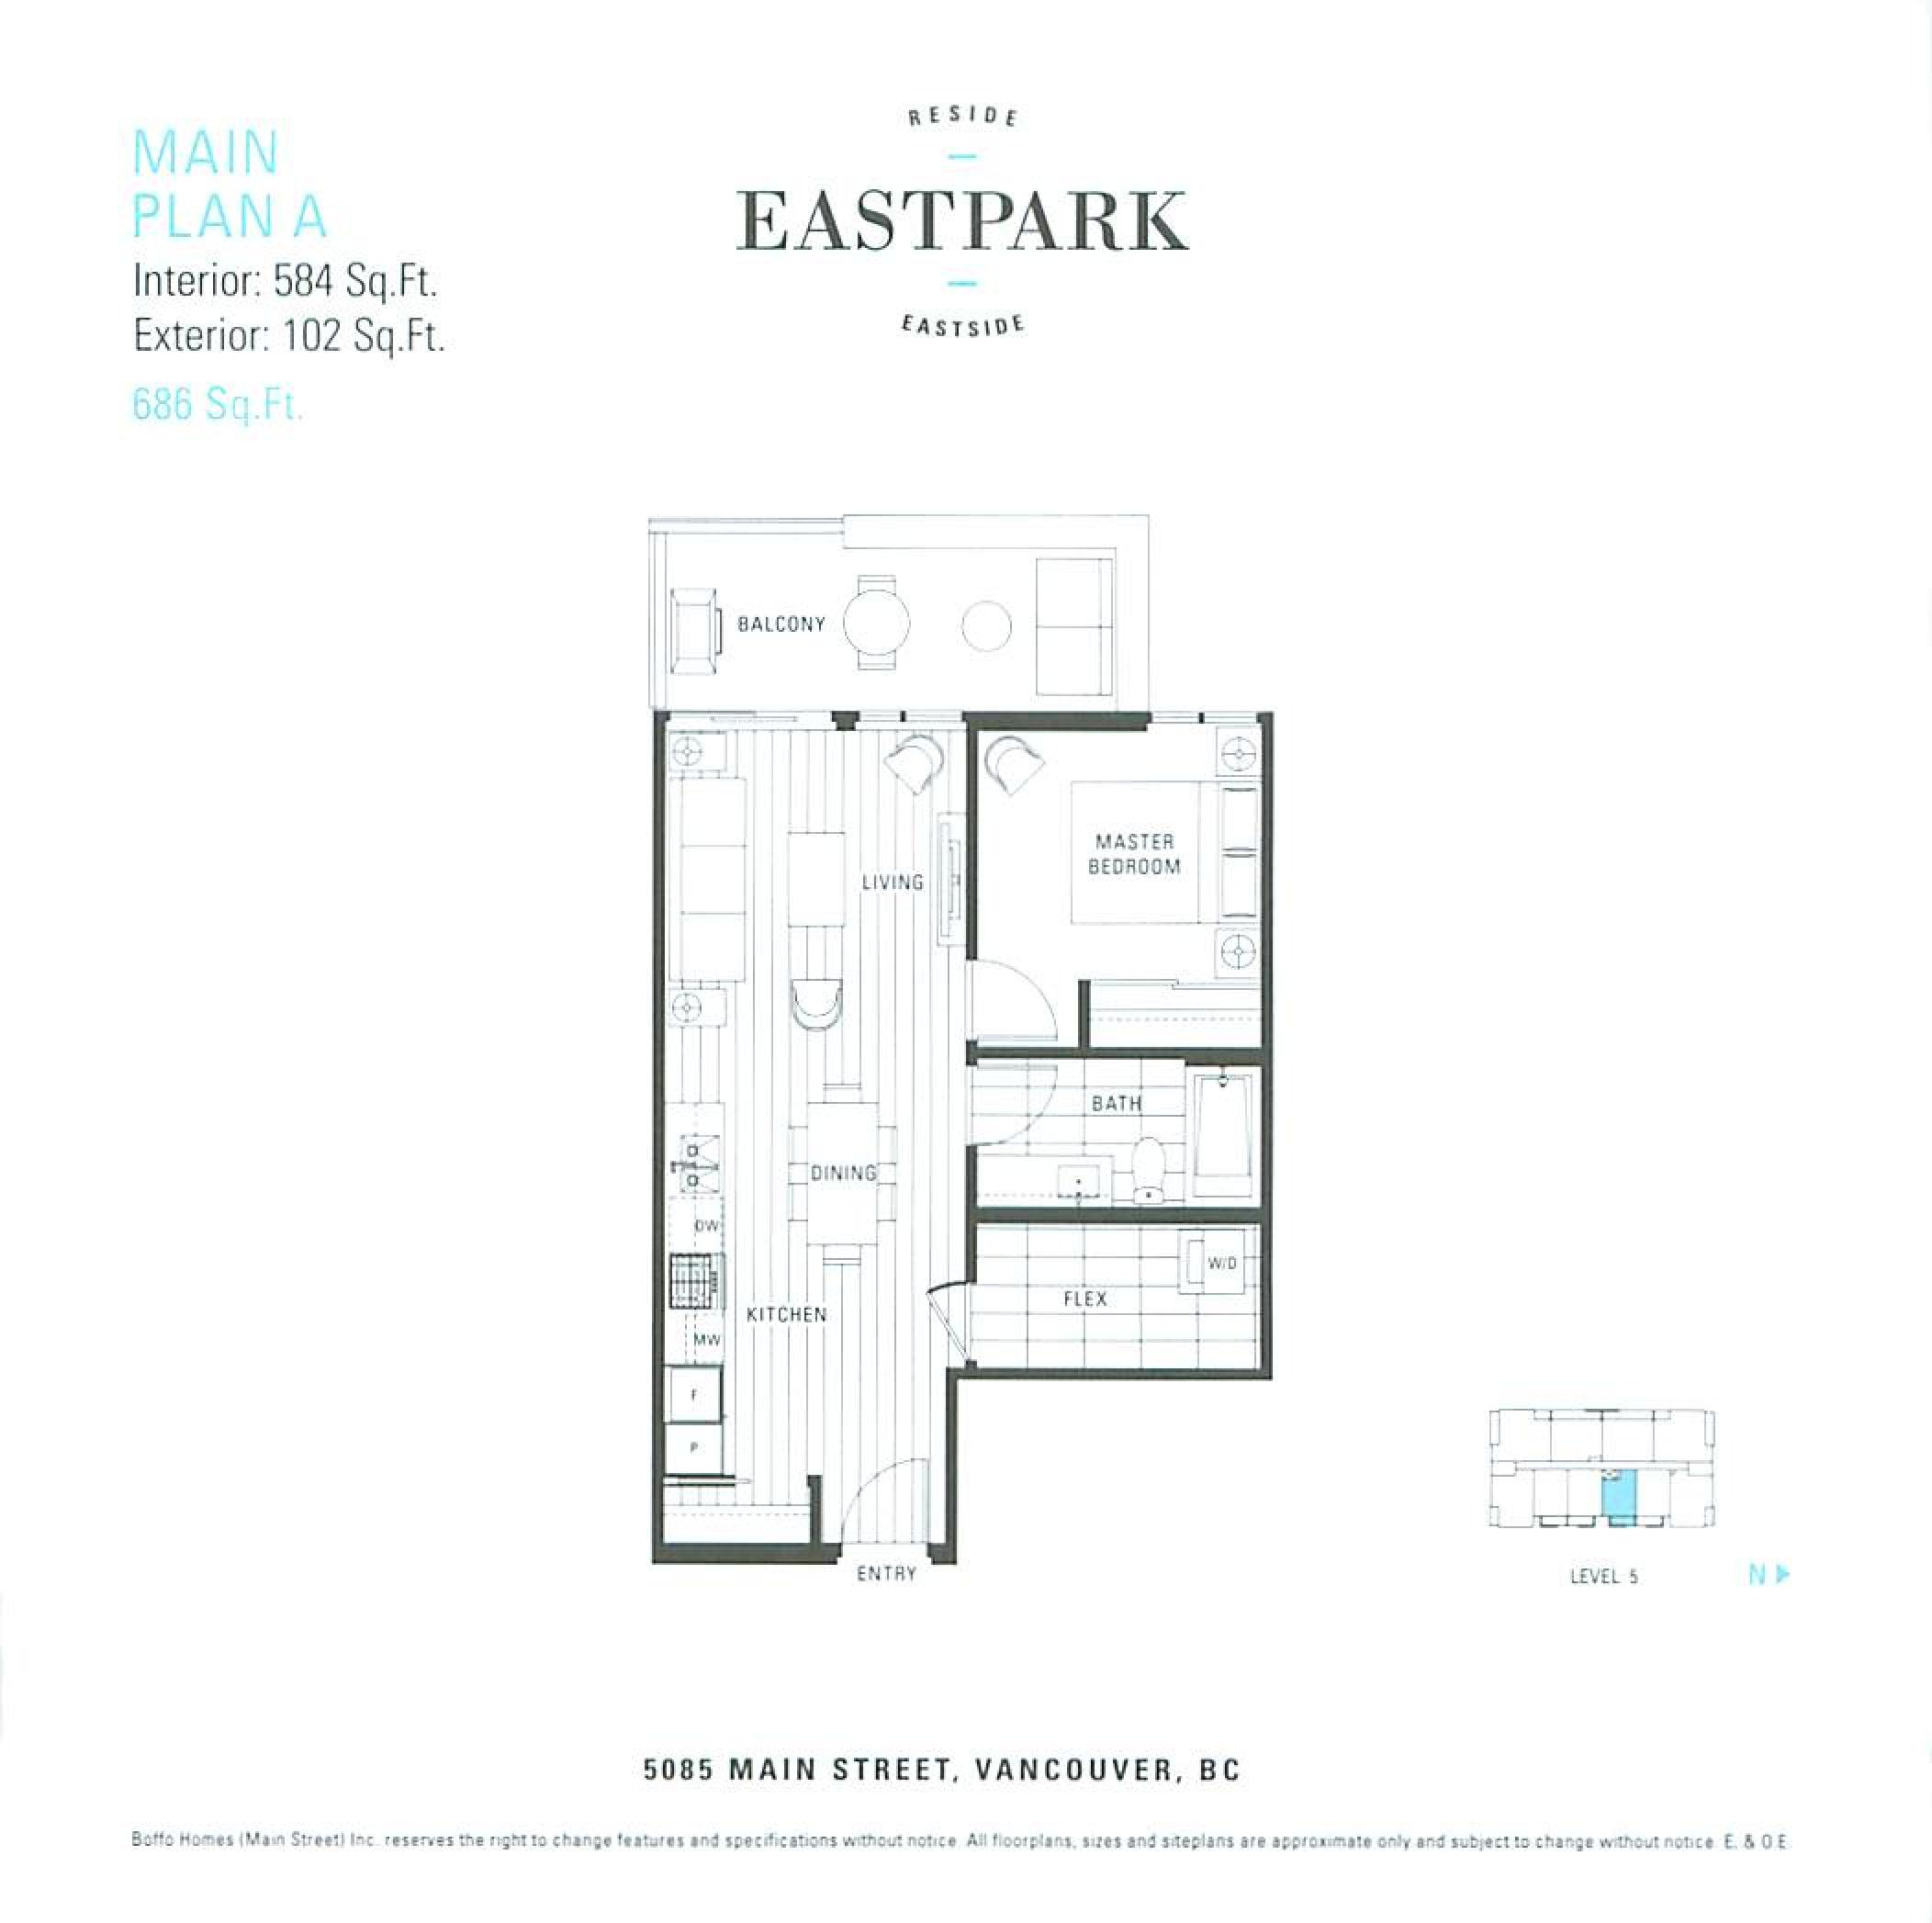 EastPark Main Smaller Floor Plans Mike Stewart-page-001